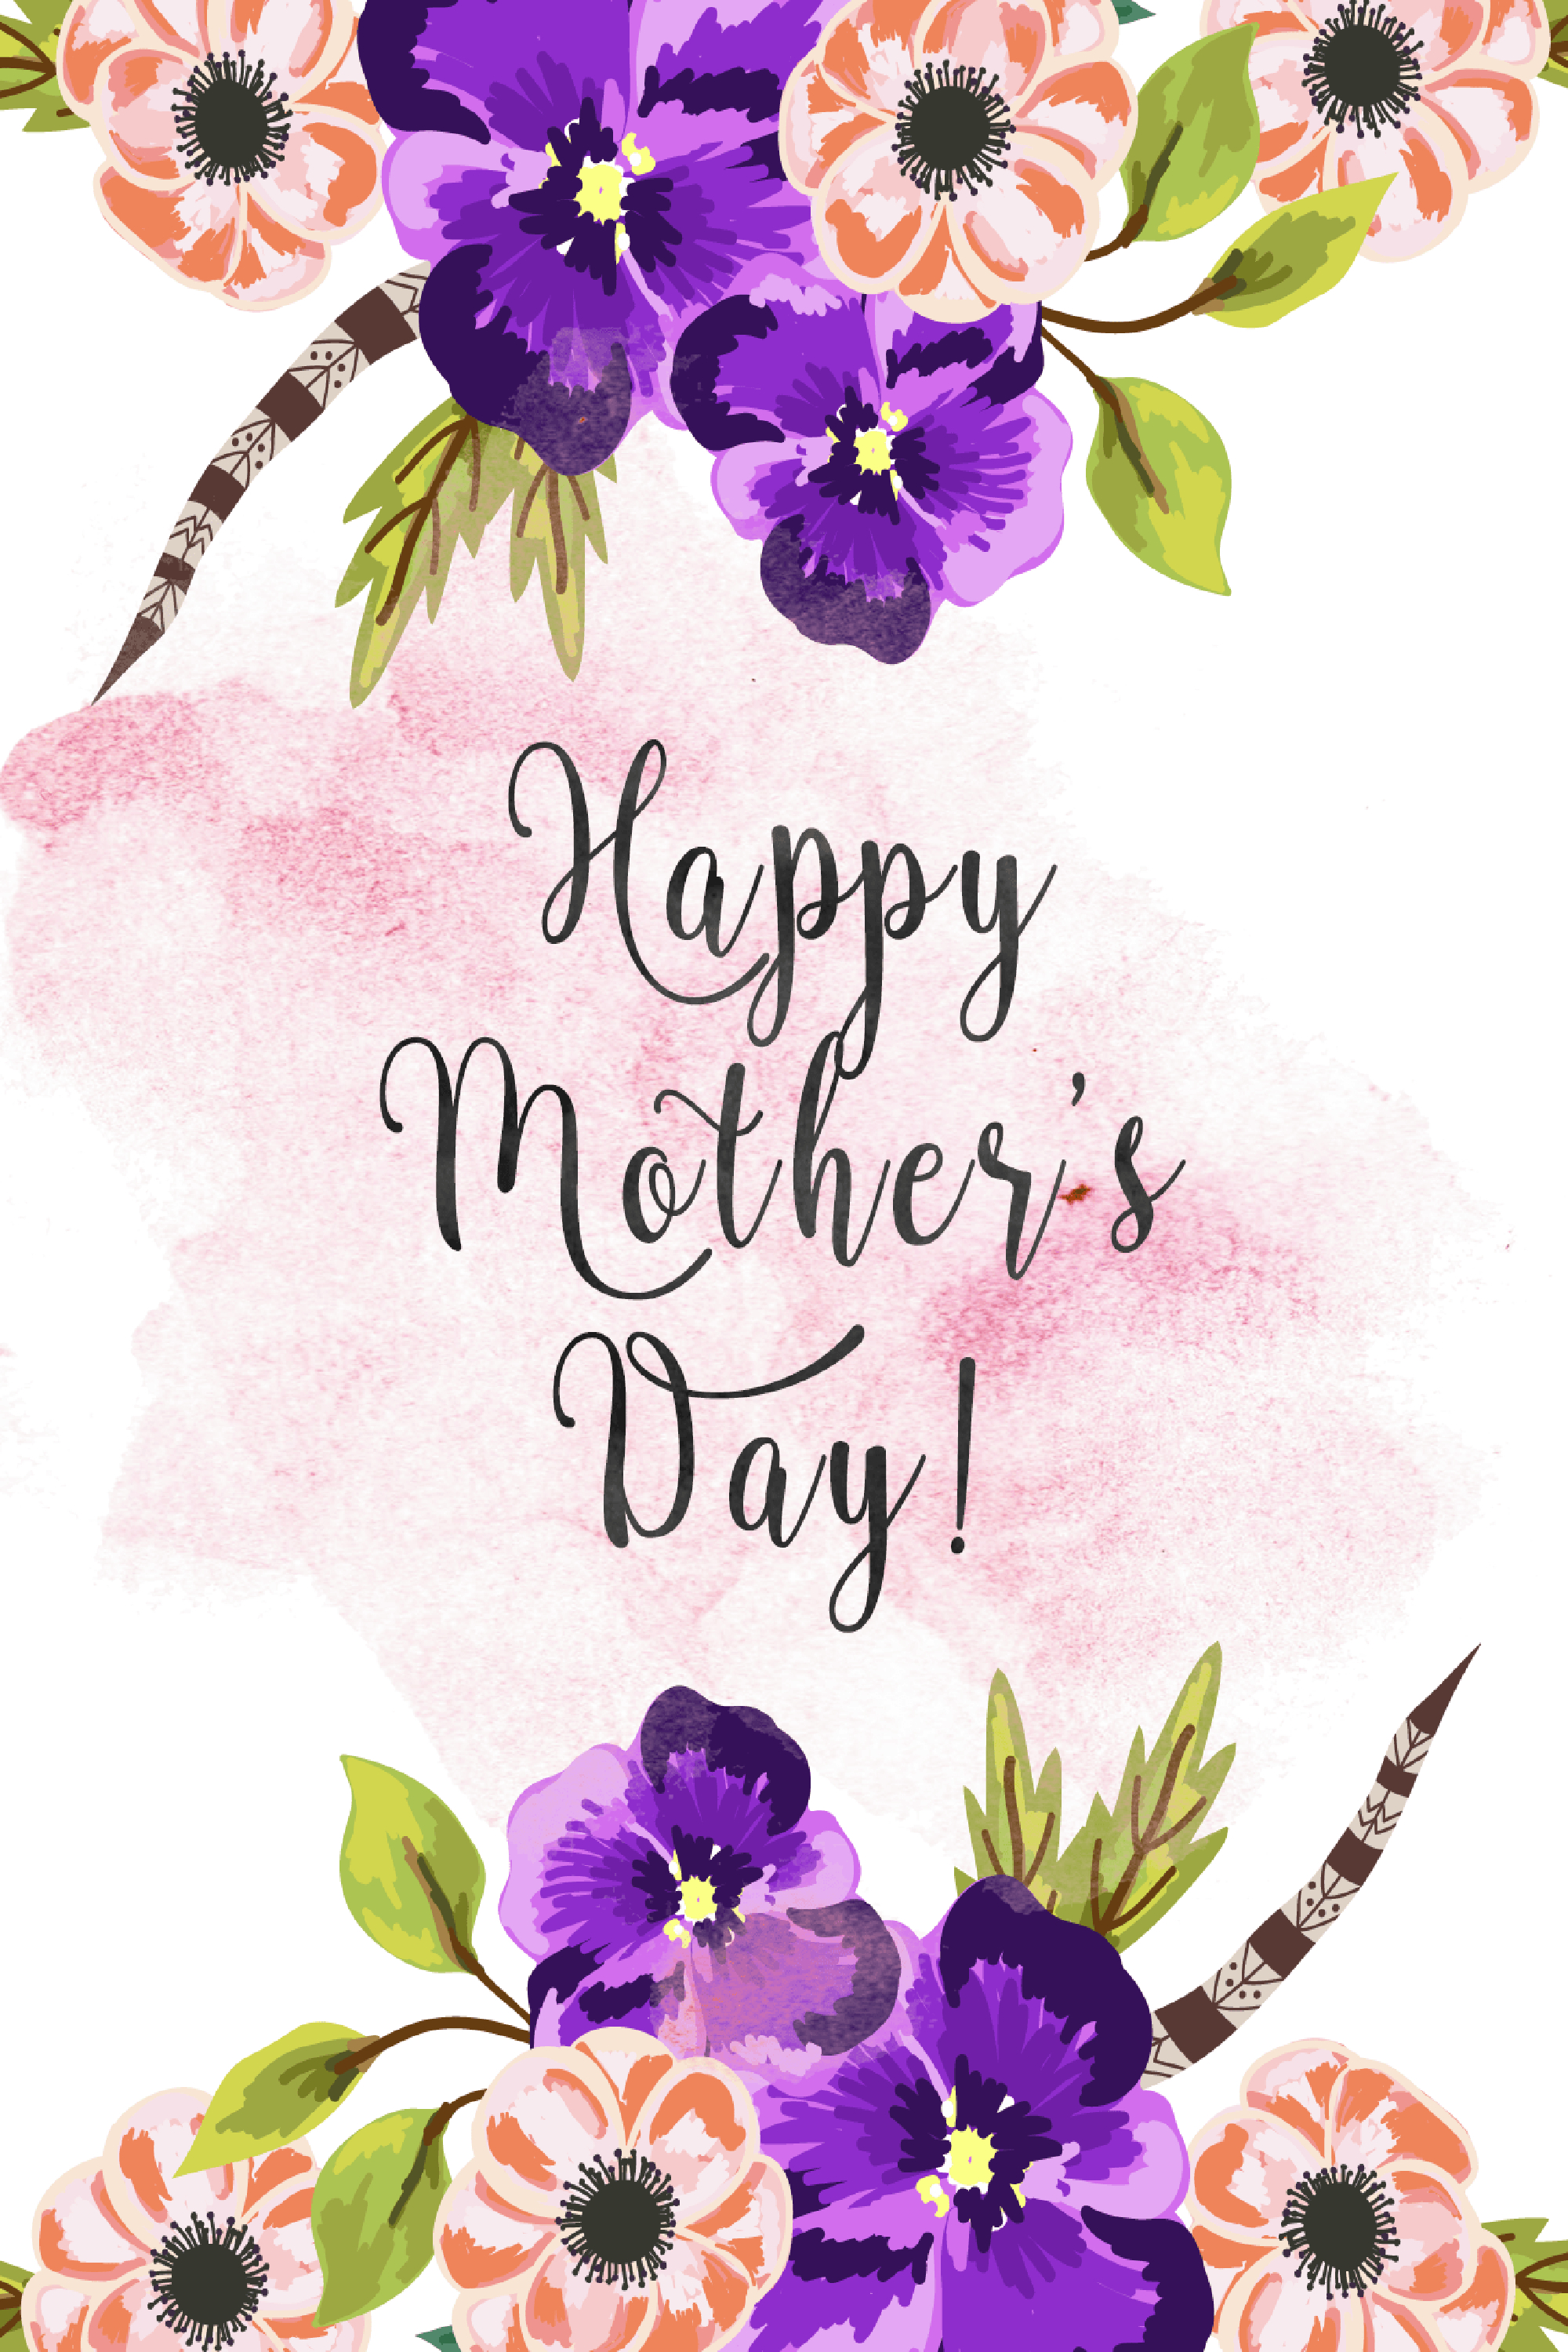 20 Cute Free Printable Mothers Day Cards - Mom Cards You Can Print - Free Printable Mothers Day Card From Dog